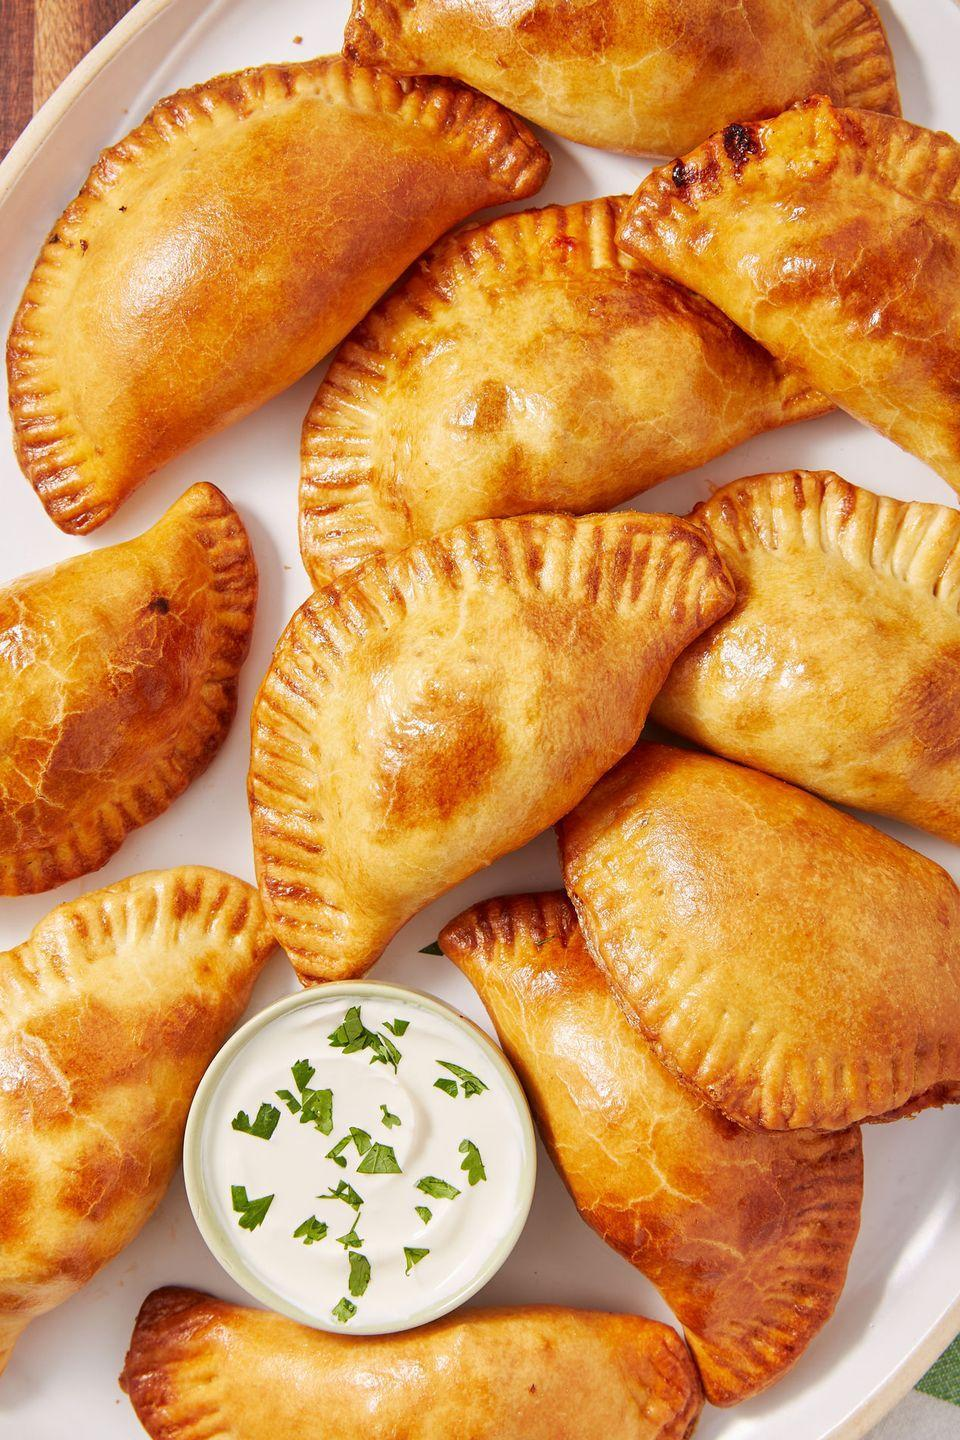 """<p>Perfectly flaky and golden crust and it's done in no time! </p><p>Get the recipe from <a href=""""https://www.delish.com/cooking/recipe-ideas/a52606/beef-empanadas-recipe/"""" rel=""""nofollow noopener"""" target=""""_blank"""" data-ylk=""""slk:Delish"""" class=""""link rapid-noclick-resp"""">Delish</a>. </p>"""